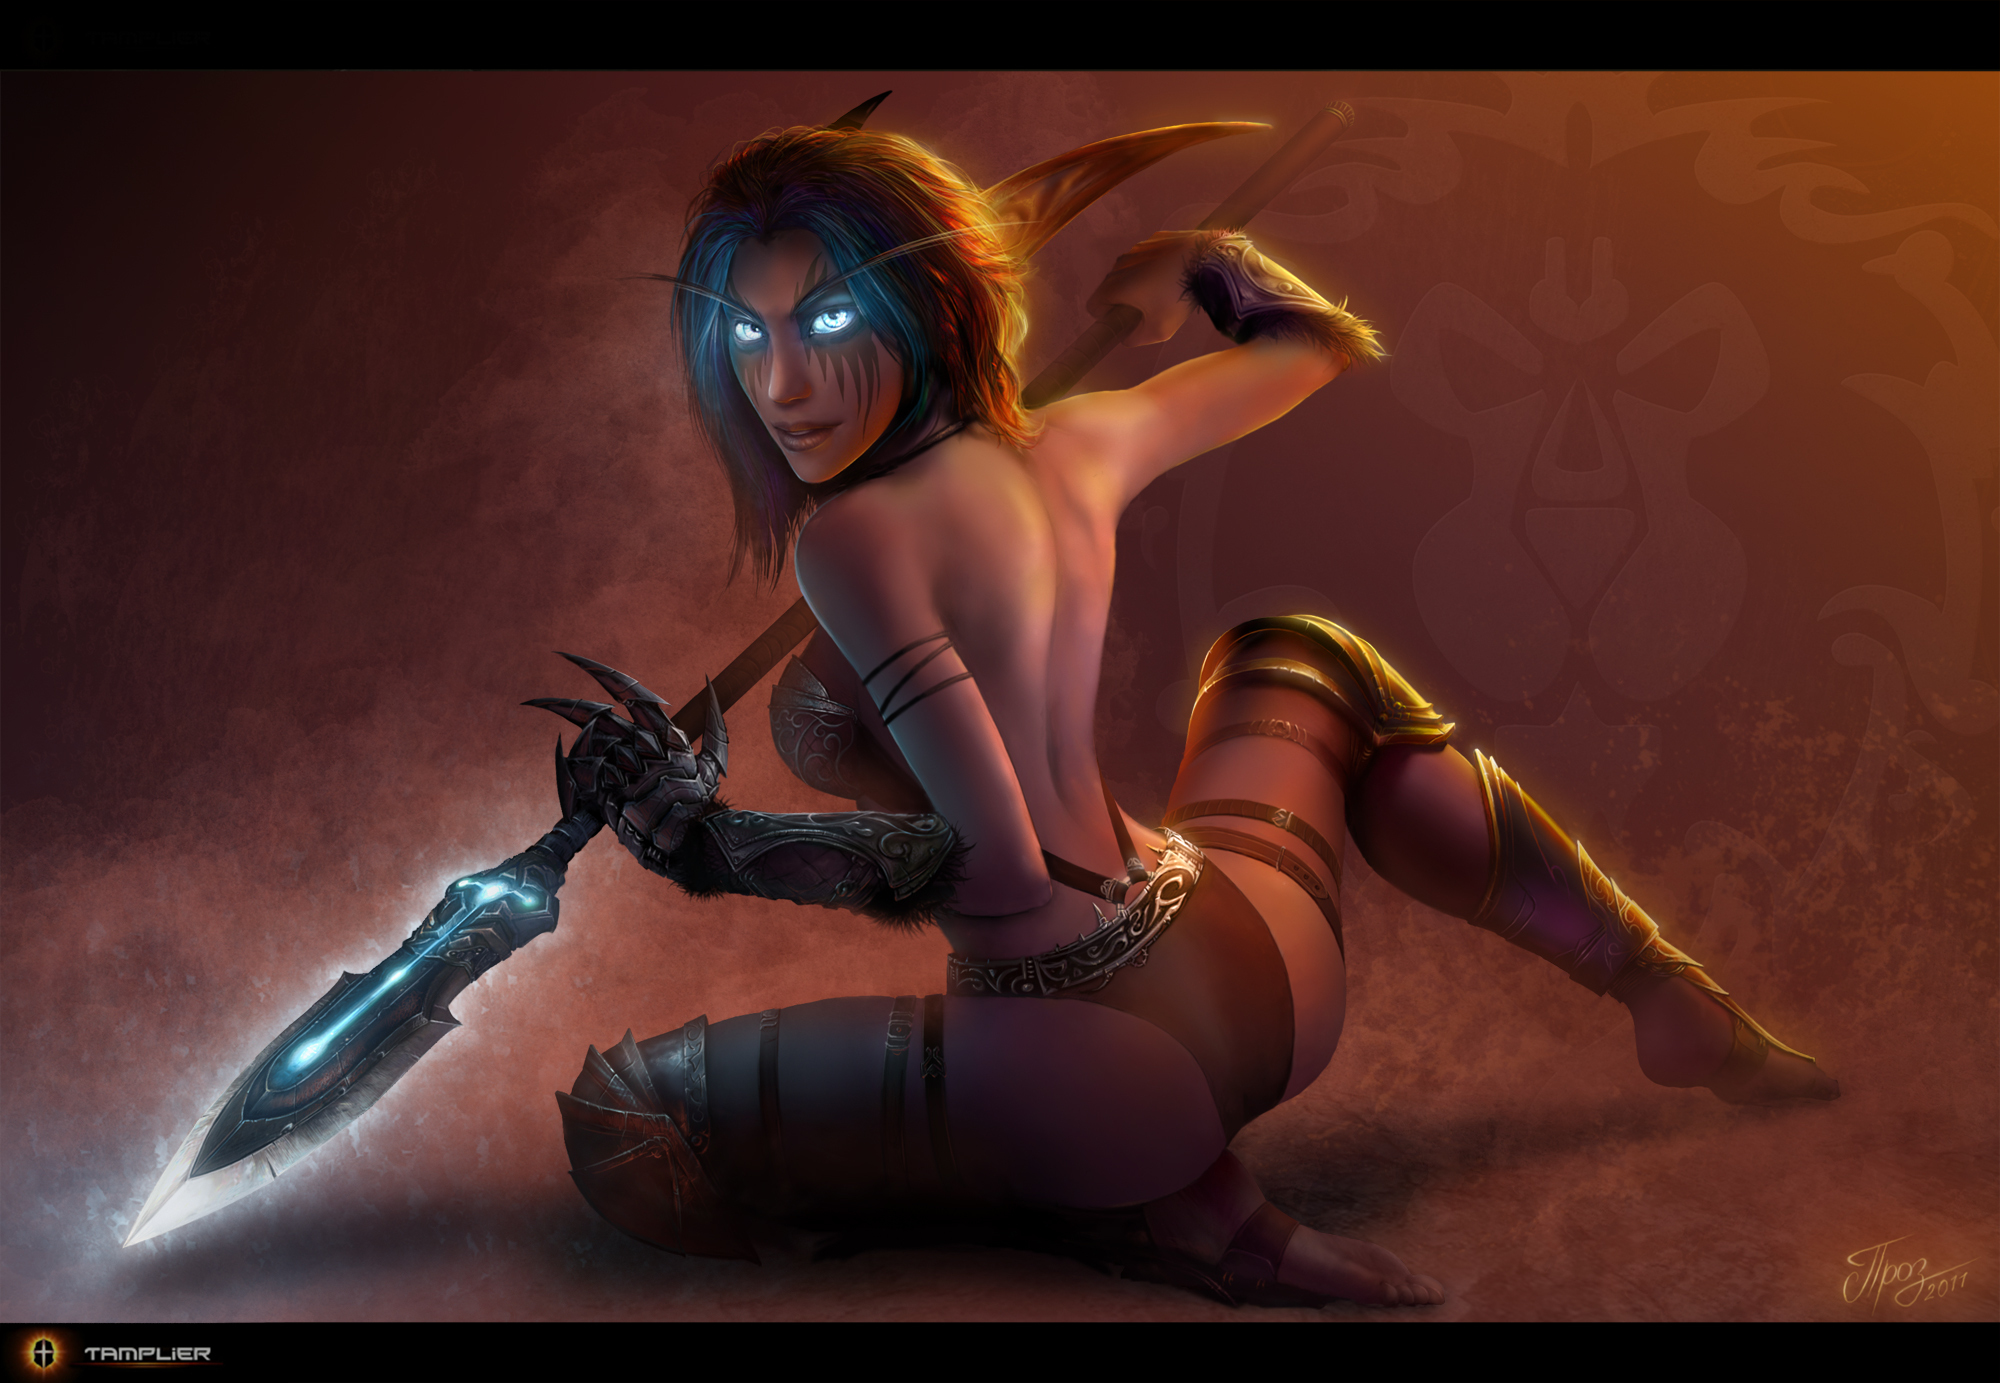 World of warcraft sex arts xxx image